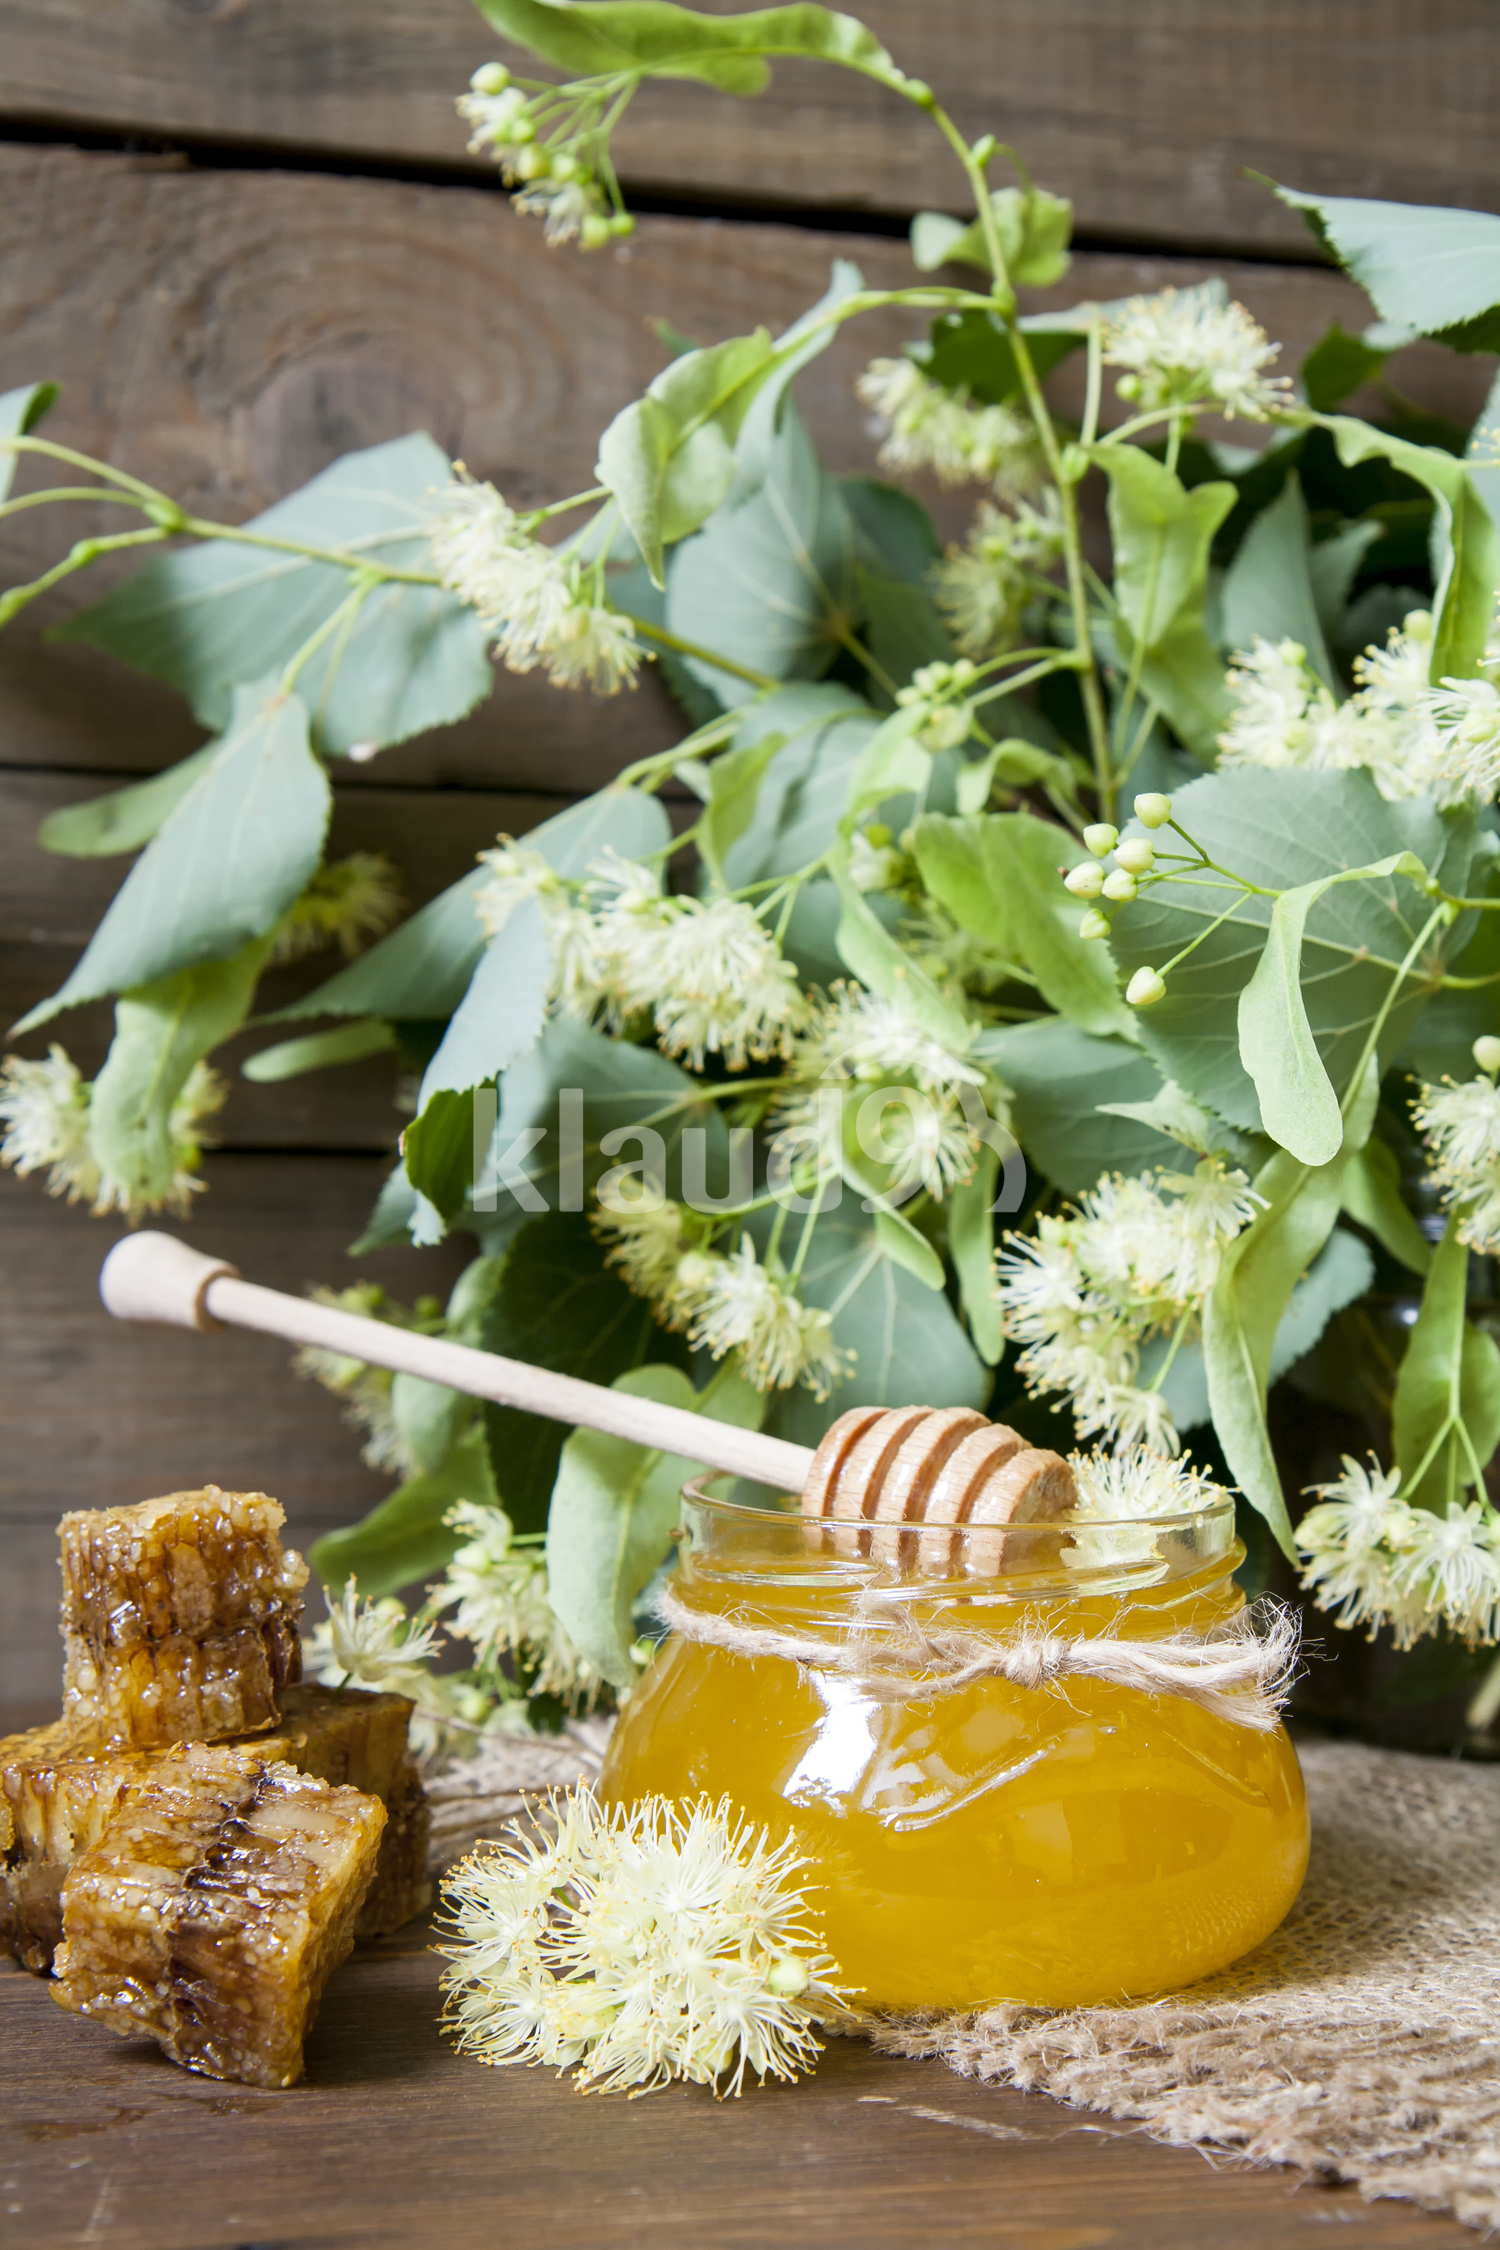 Jar with honey, honeycomb with pollen and linden flowers